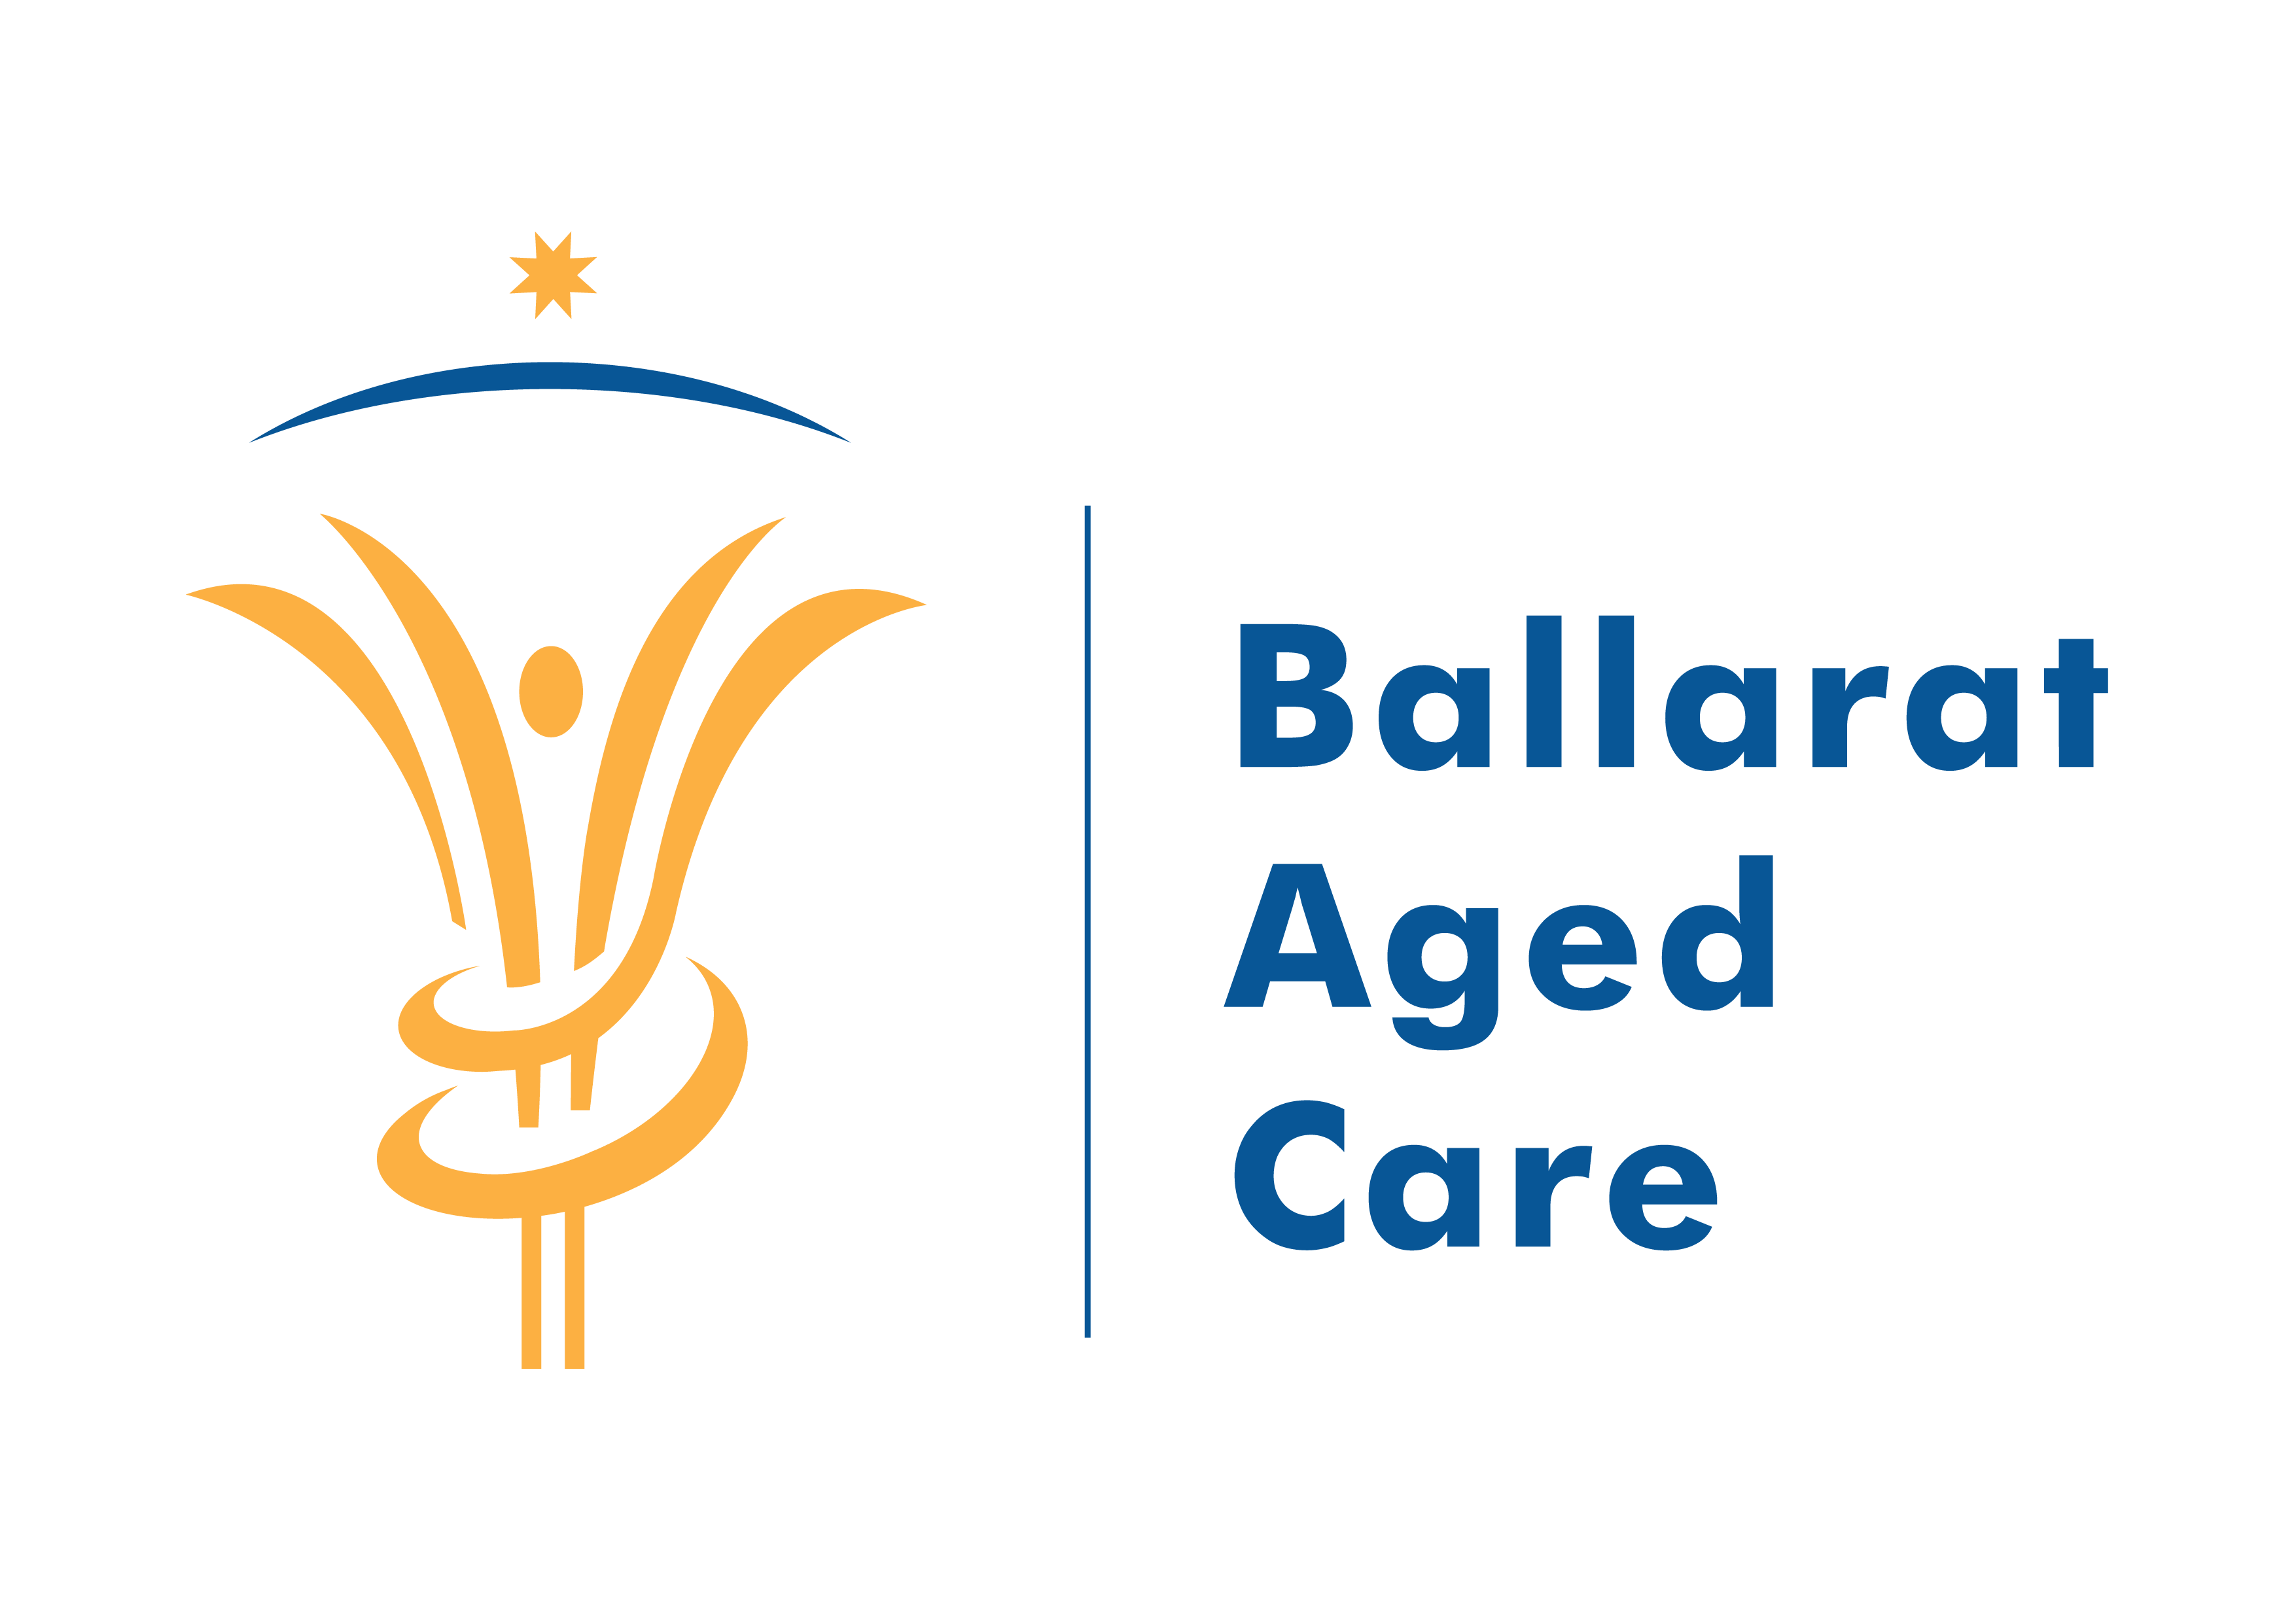 Welcome to Ballarat Aged Care